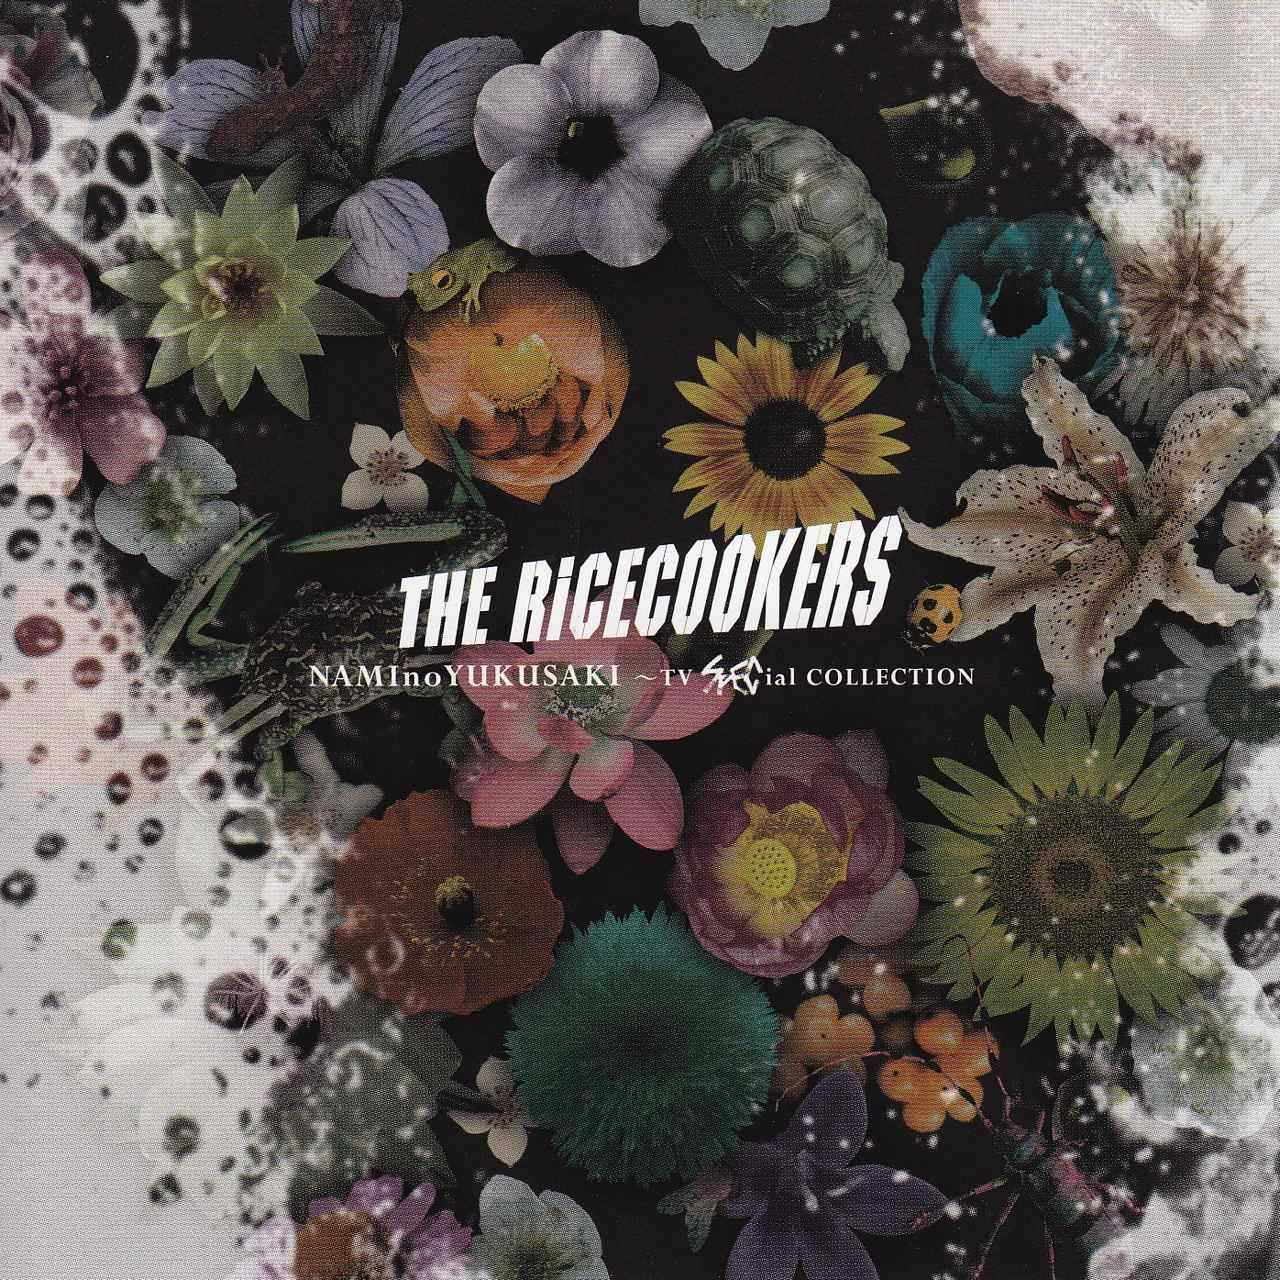 【今日の1曲】THE RICECOOKERS NAMInoYUKUSAKI〜天〜